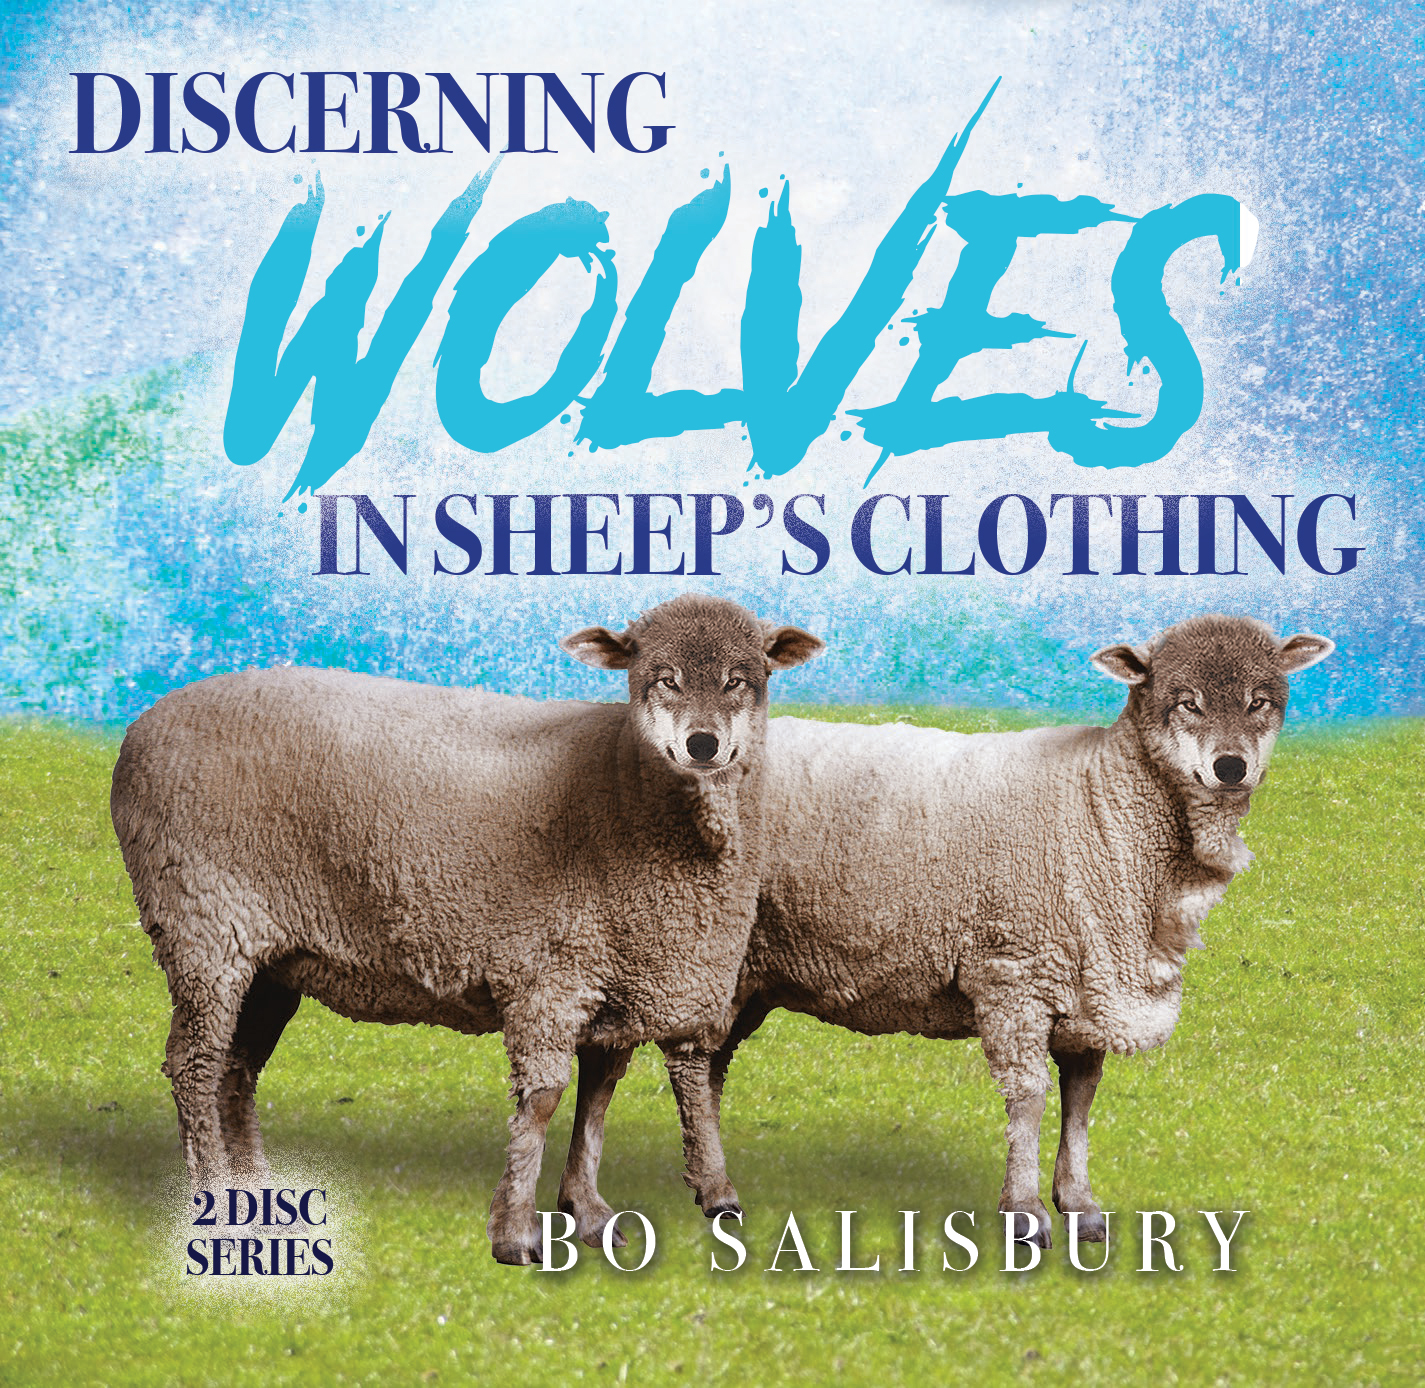 Discerning Wolves in Sheep's Clothing 4818